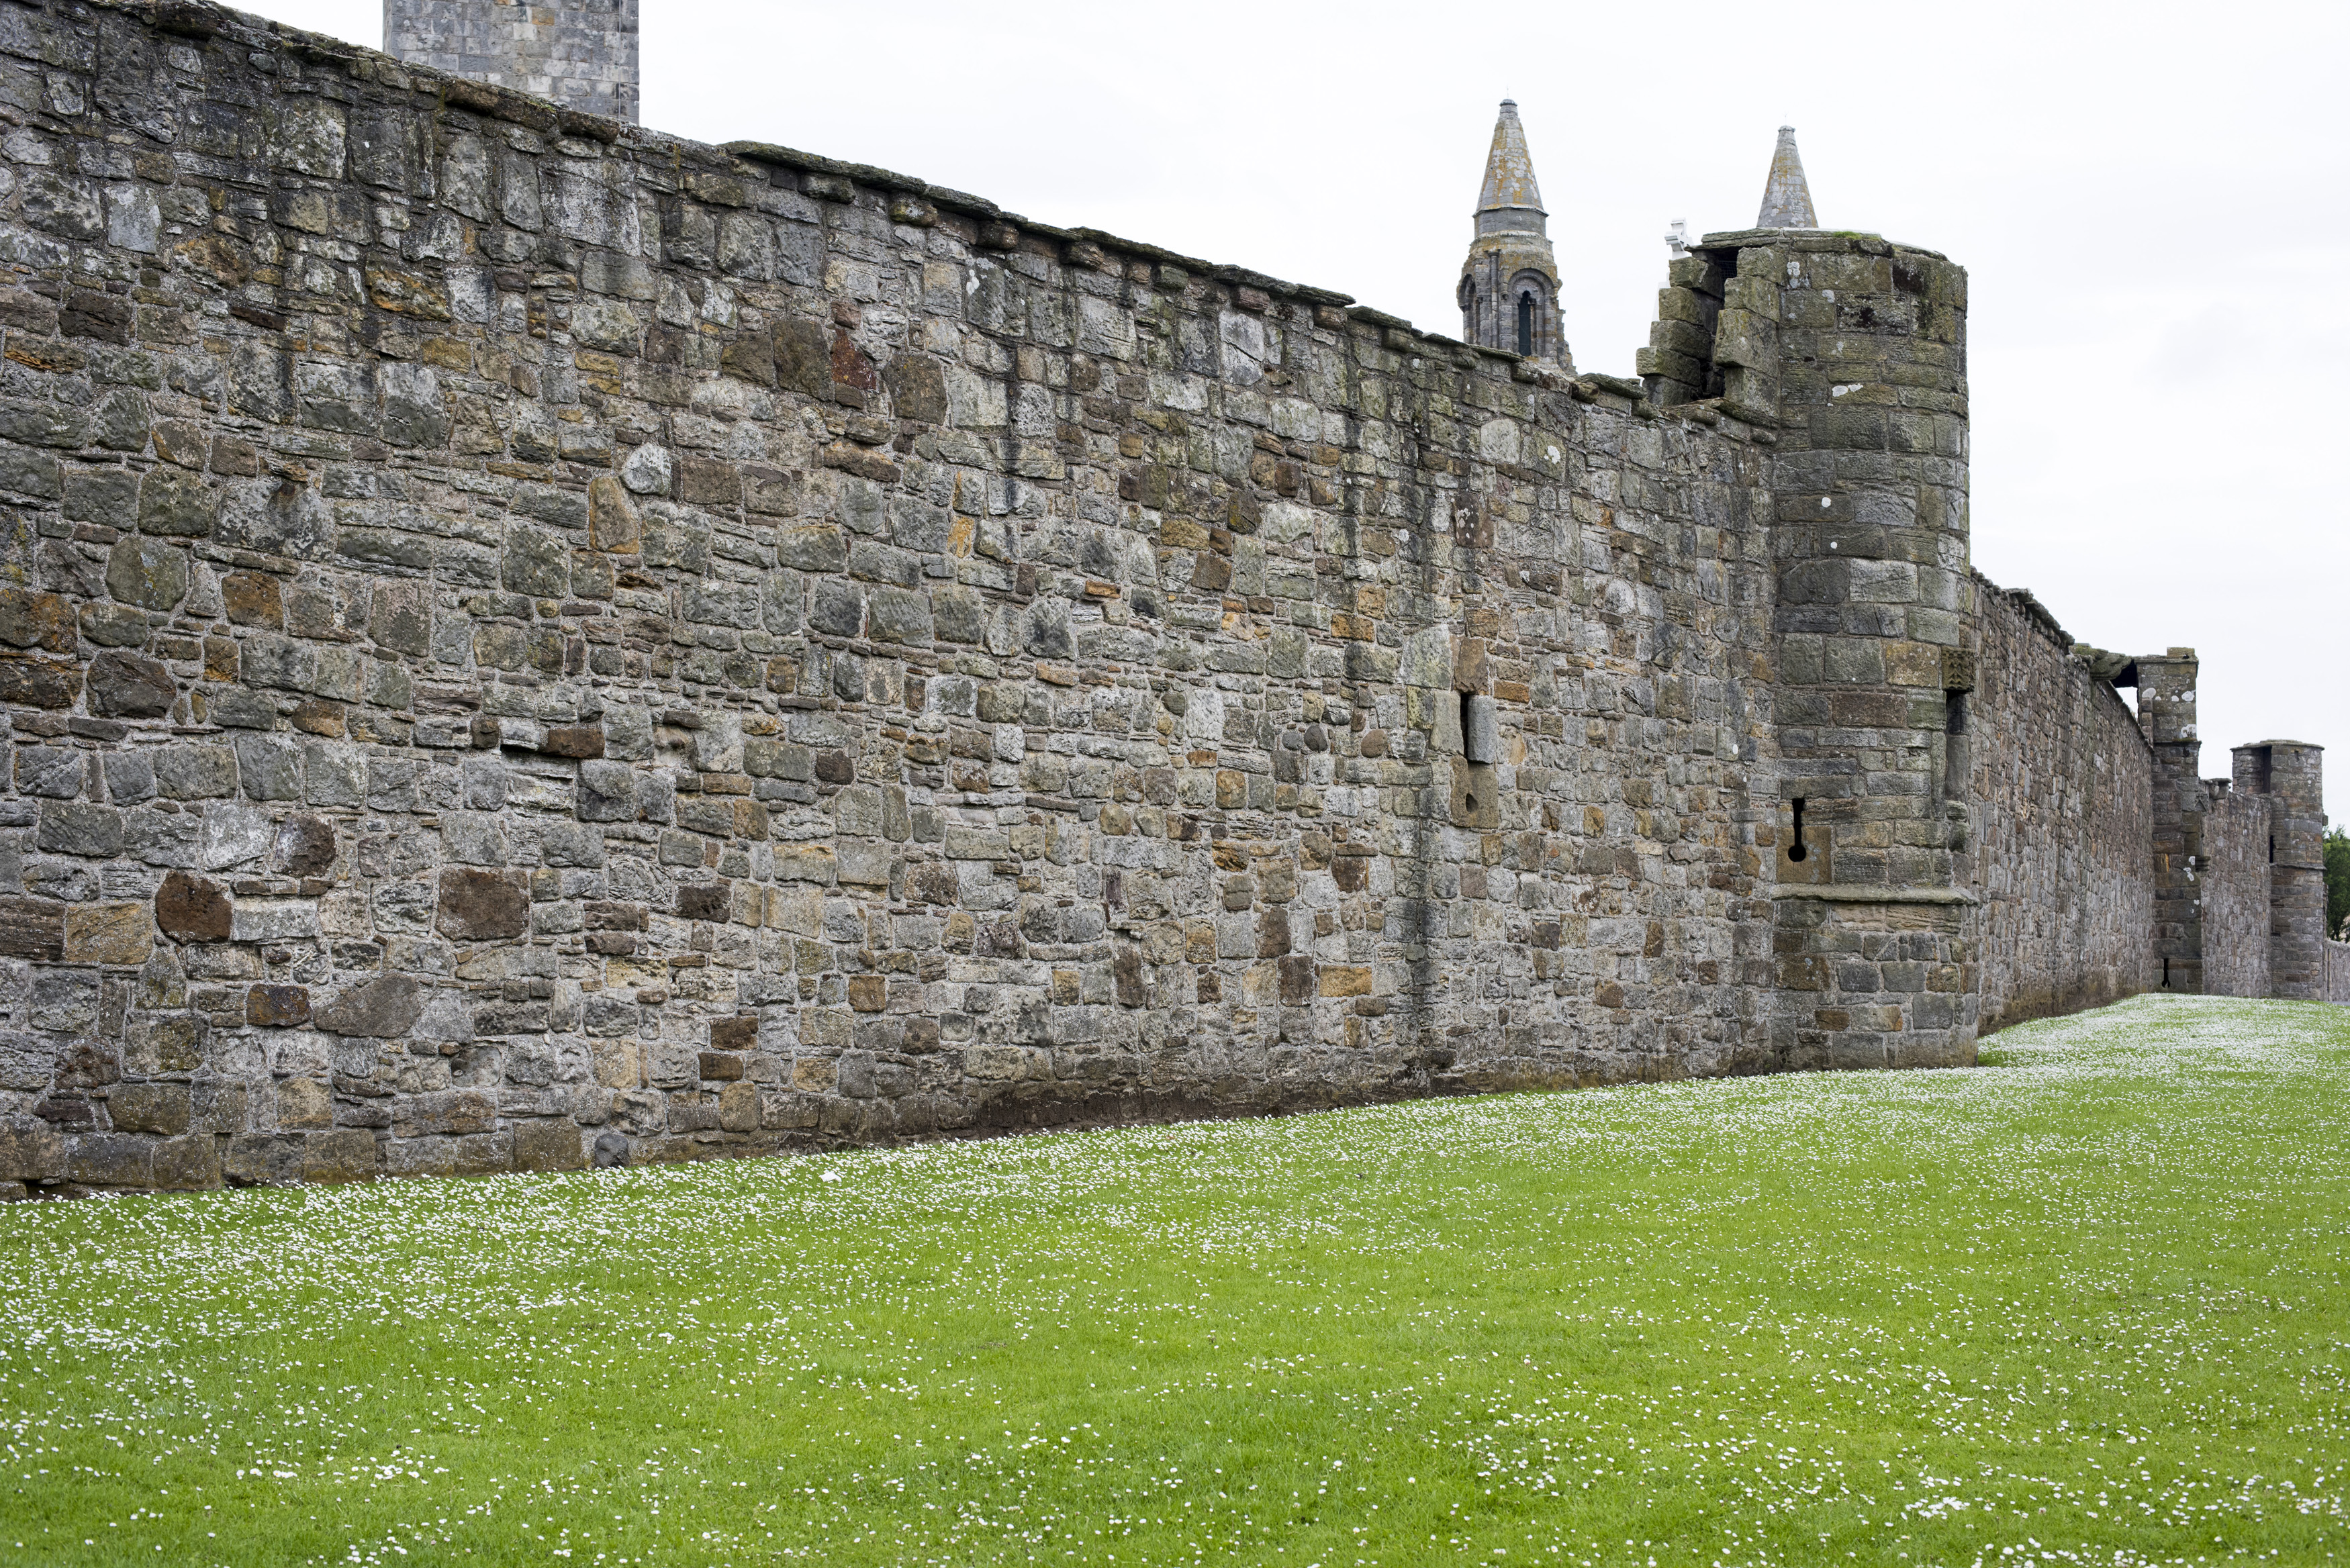 Ancient stone wall of the walled grounds of the St Andrews Cathedral ruins in the Scottish town of St Andrews in a receding perspective